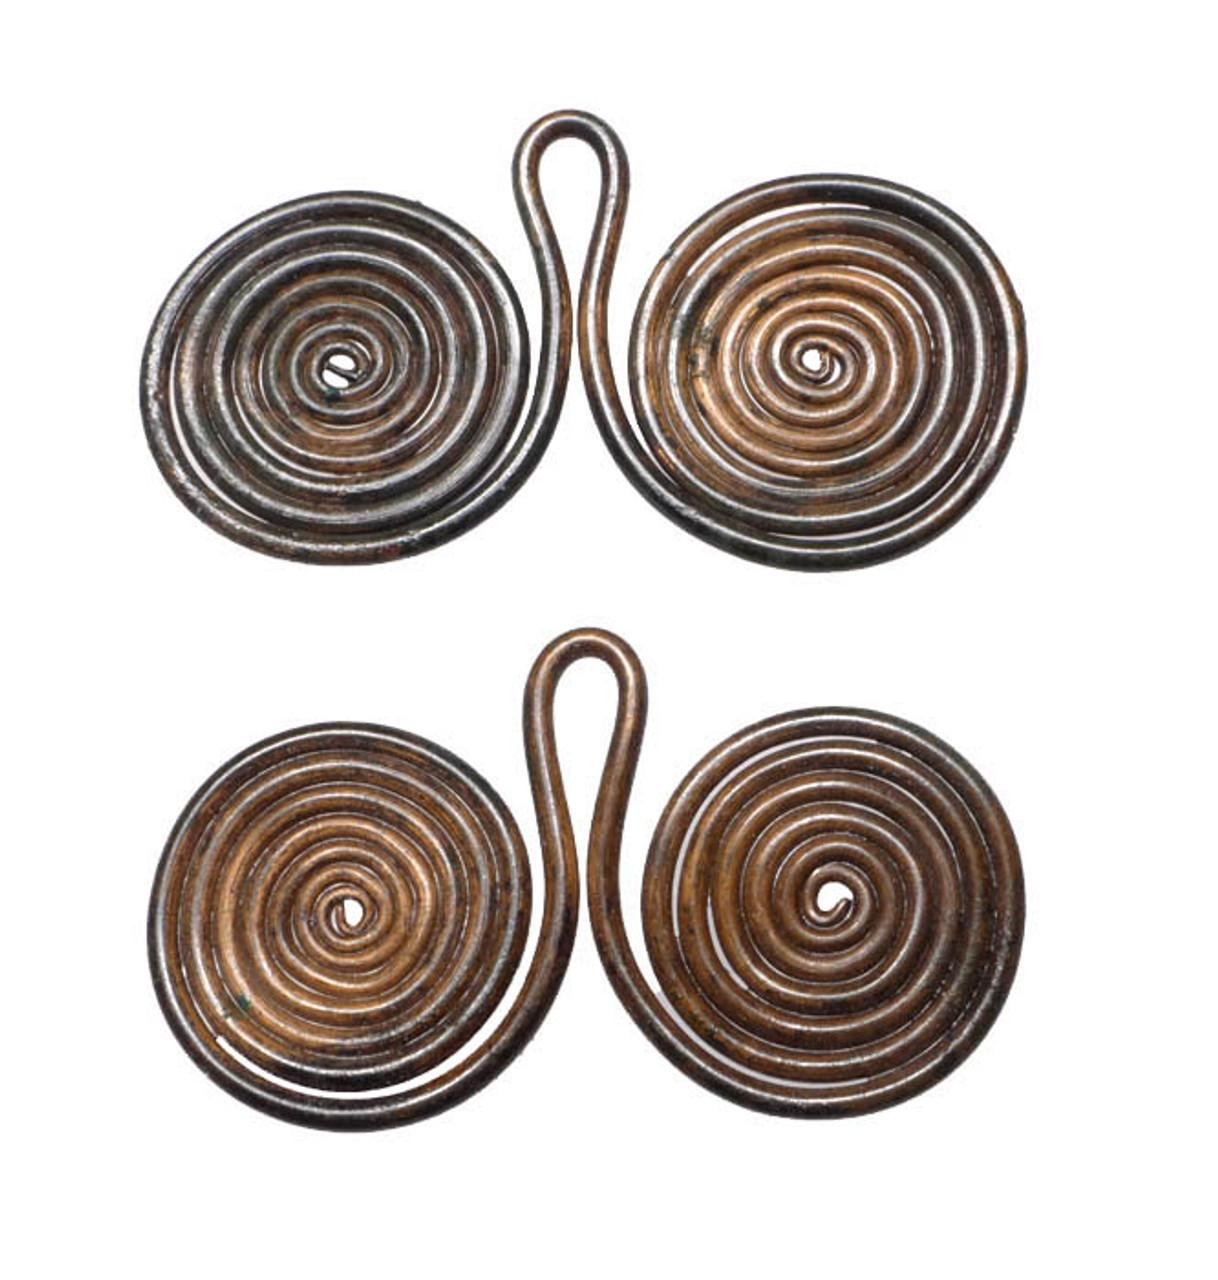 MUSEUM-CLASS EUROPEAN BRONZE AGE SPIRAL ORNAMENT SET WITH SUPERB INTACT PRESERVATION *EB001